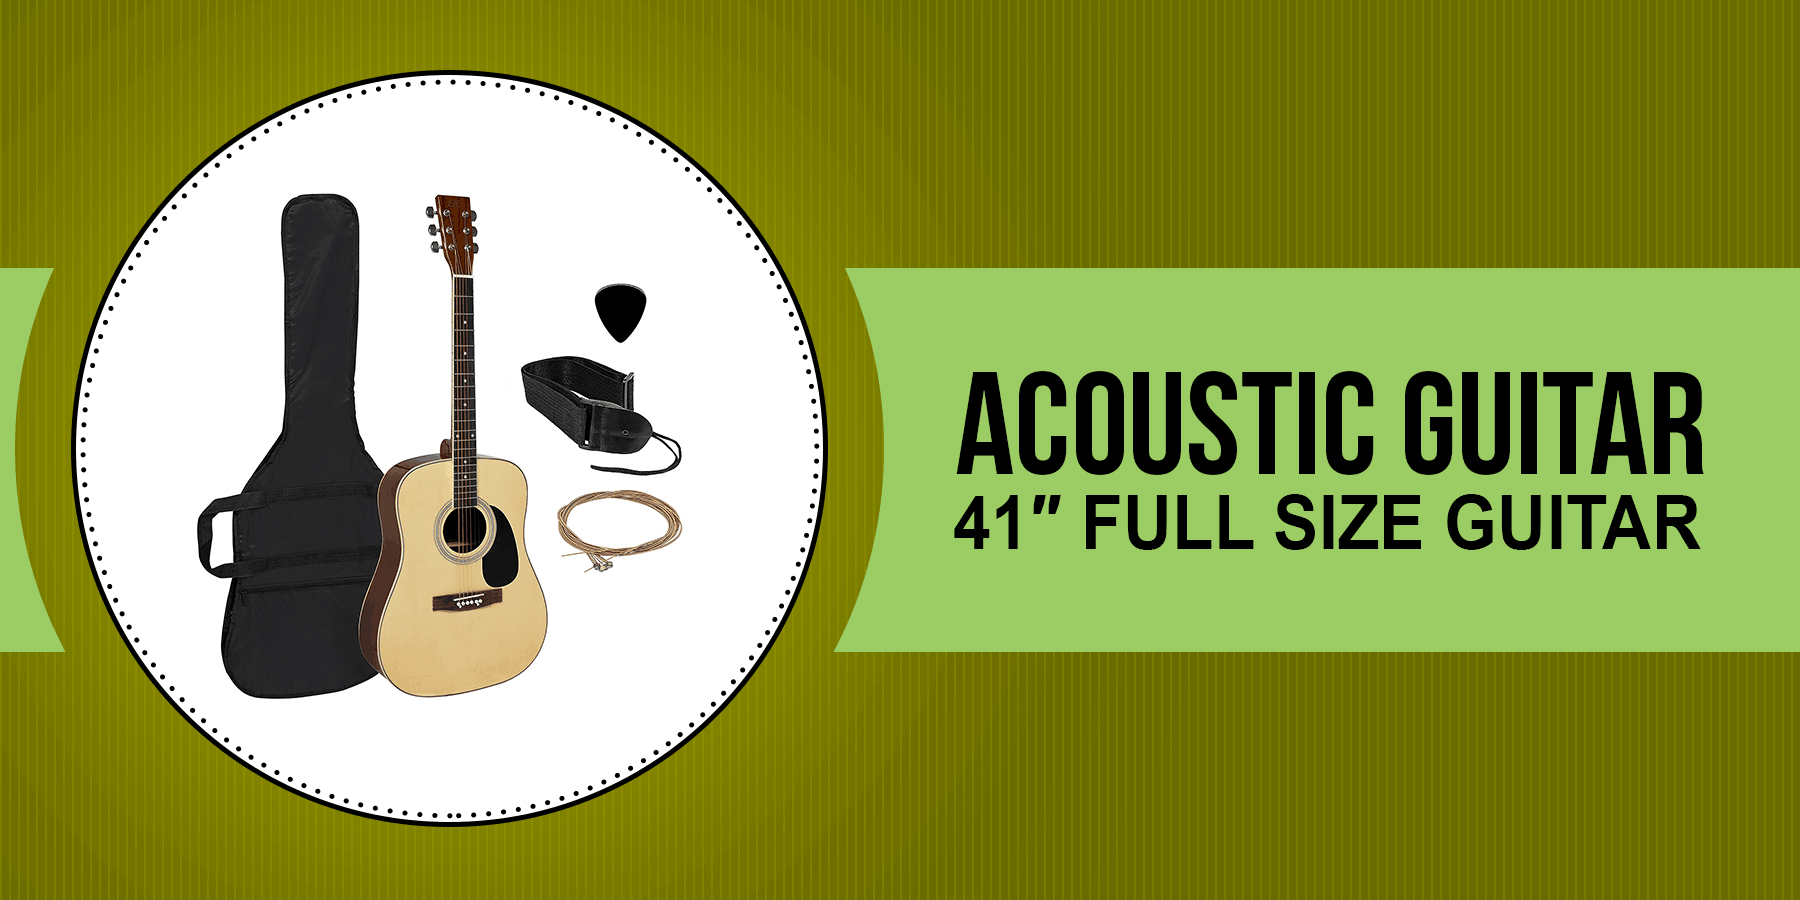 Acoustic Guitar 41″ full size Guitar Review